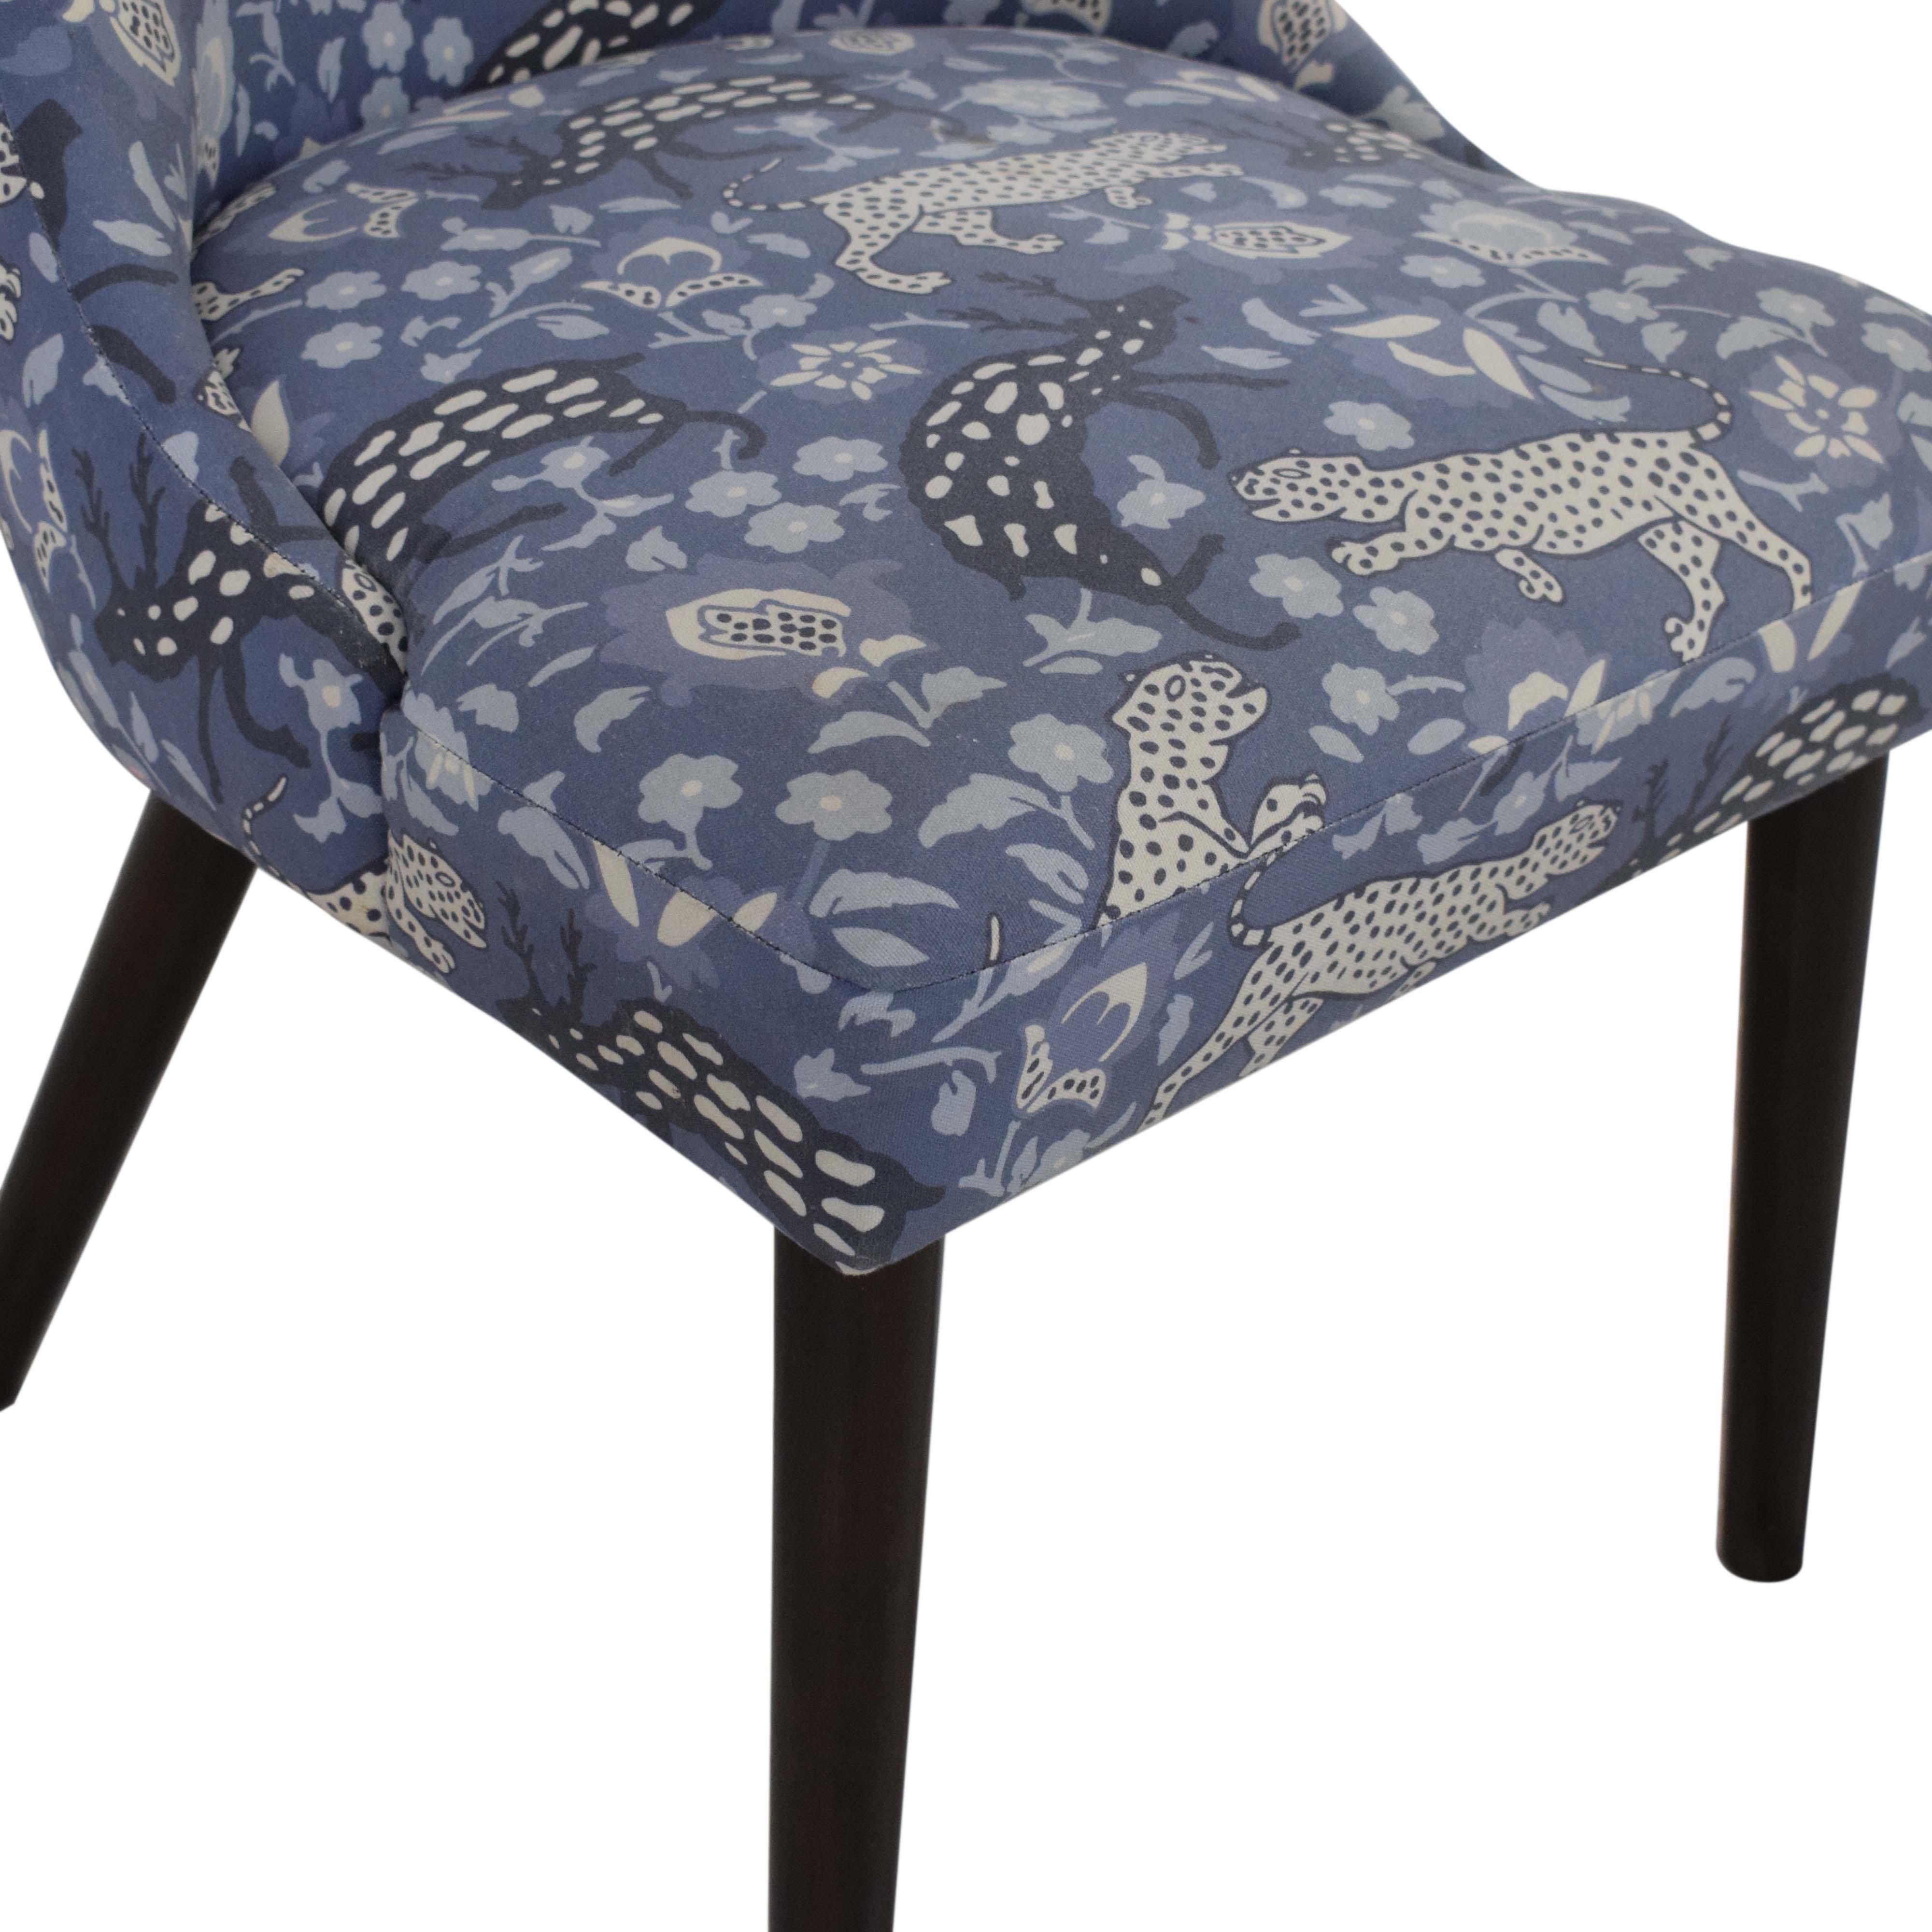 Skyline Furniture Skyline Patterned Upholstered Dining Chair ma